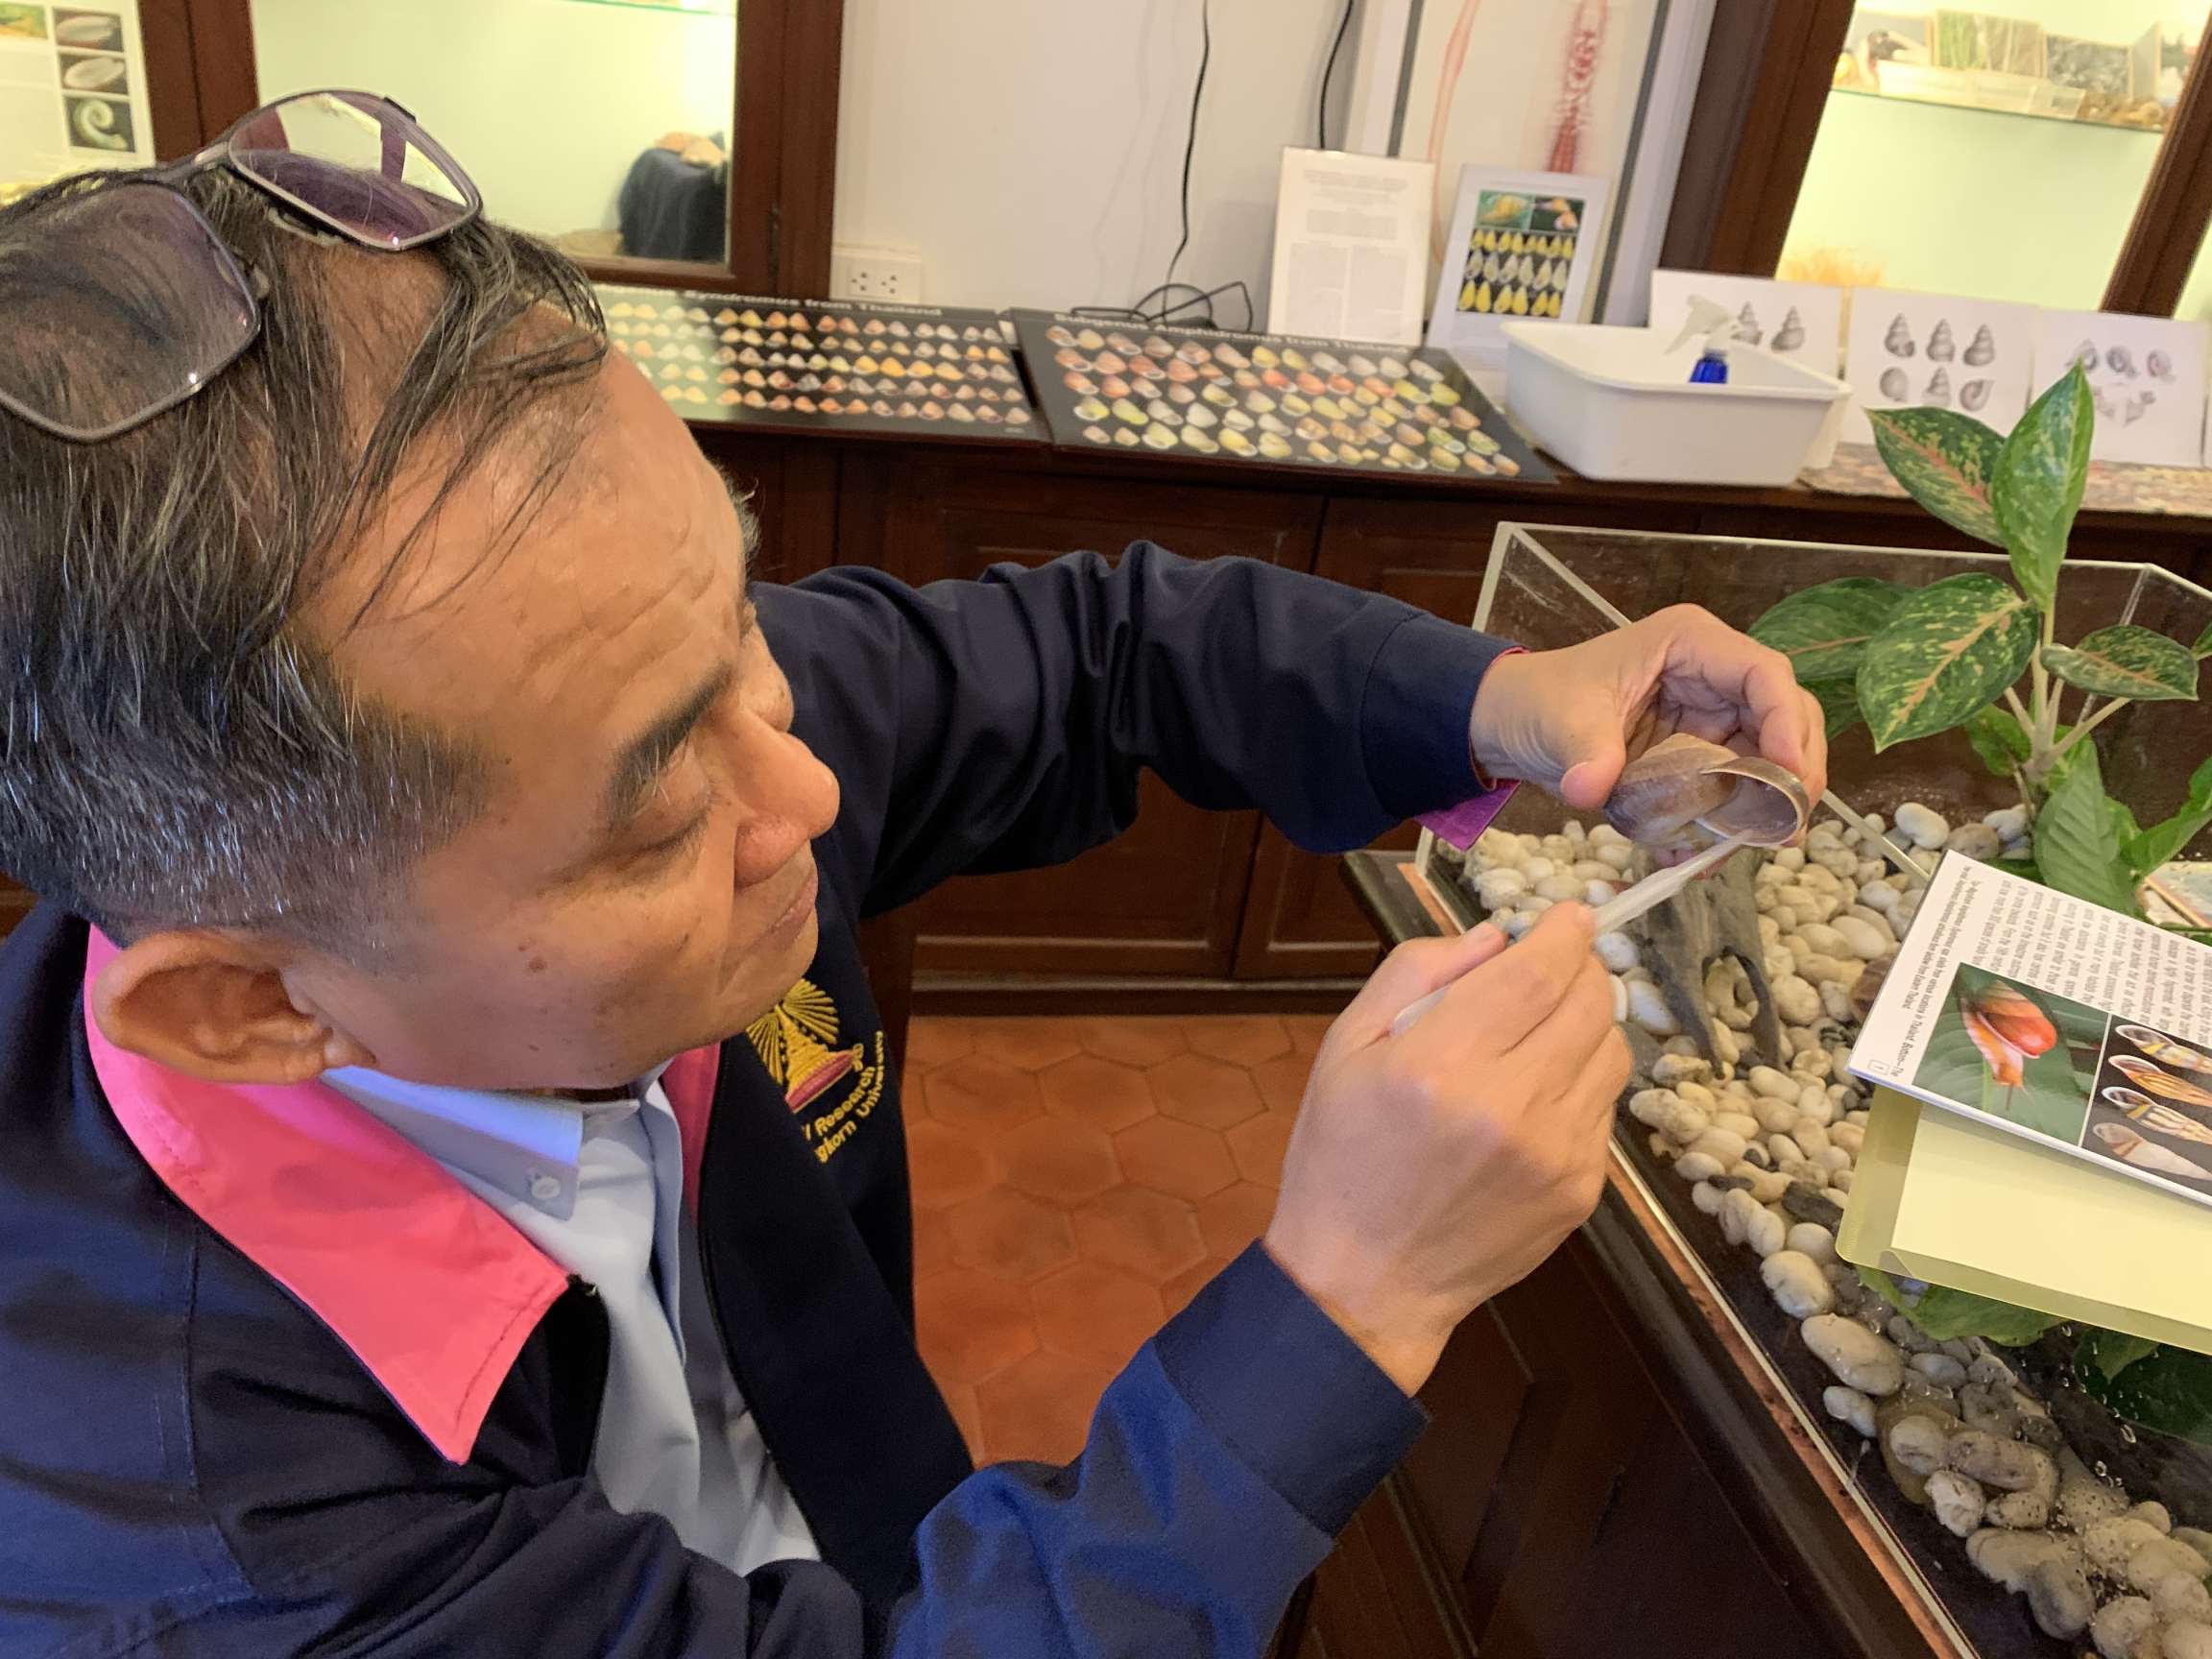 Somsak Panha is a biologist who is known as Thailand's top snail guru.